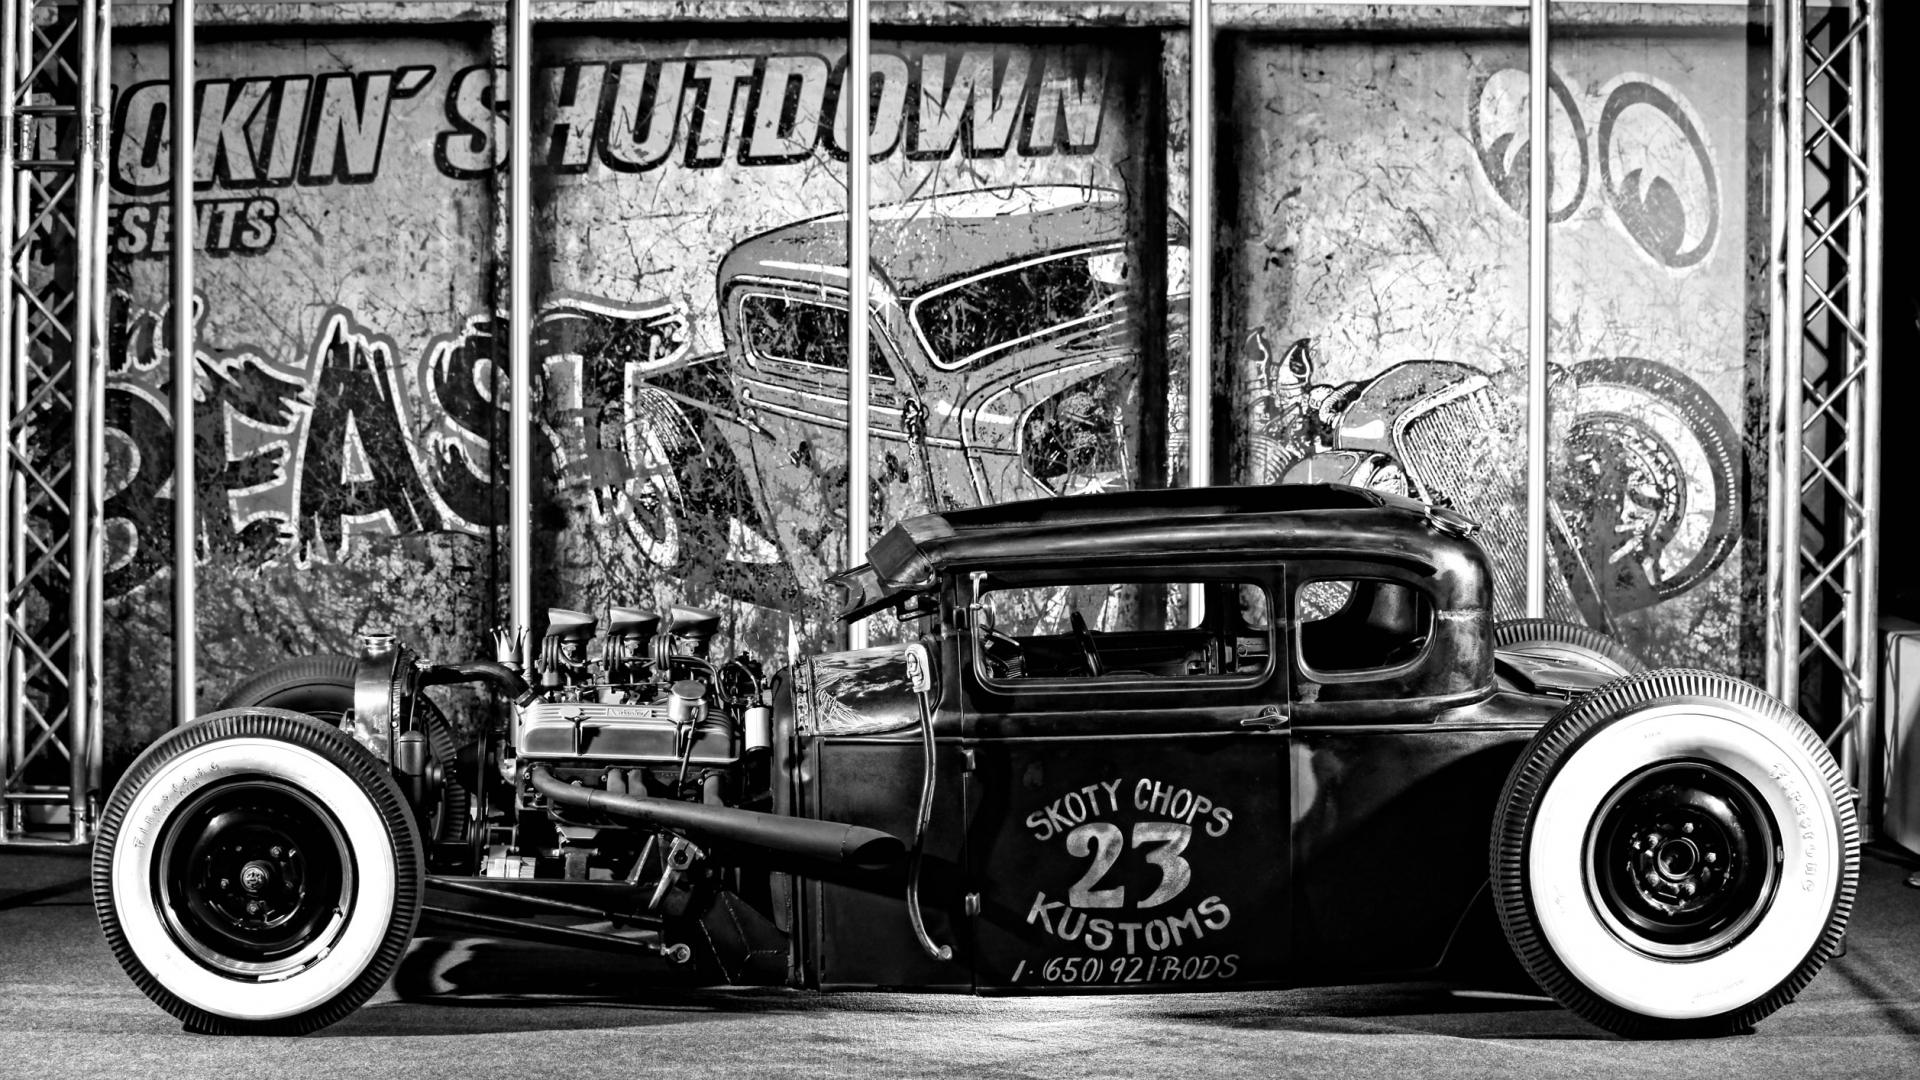 Free Download Rat Rod Pin Up Wallpaper Picswallpapercom 2514x1414